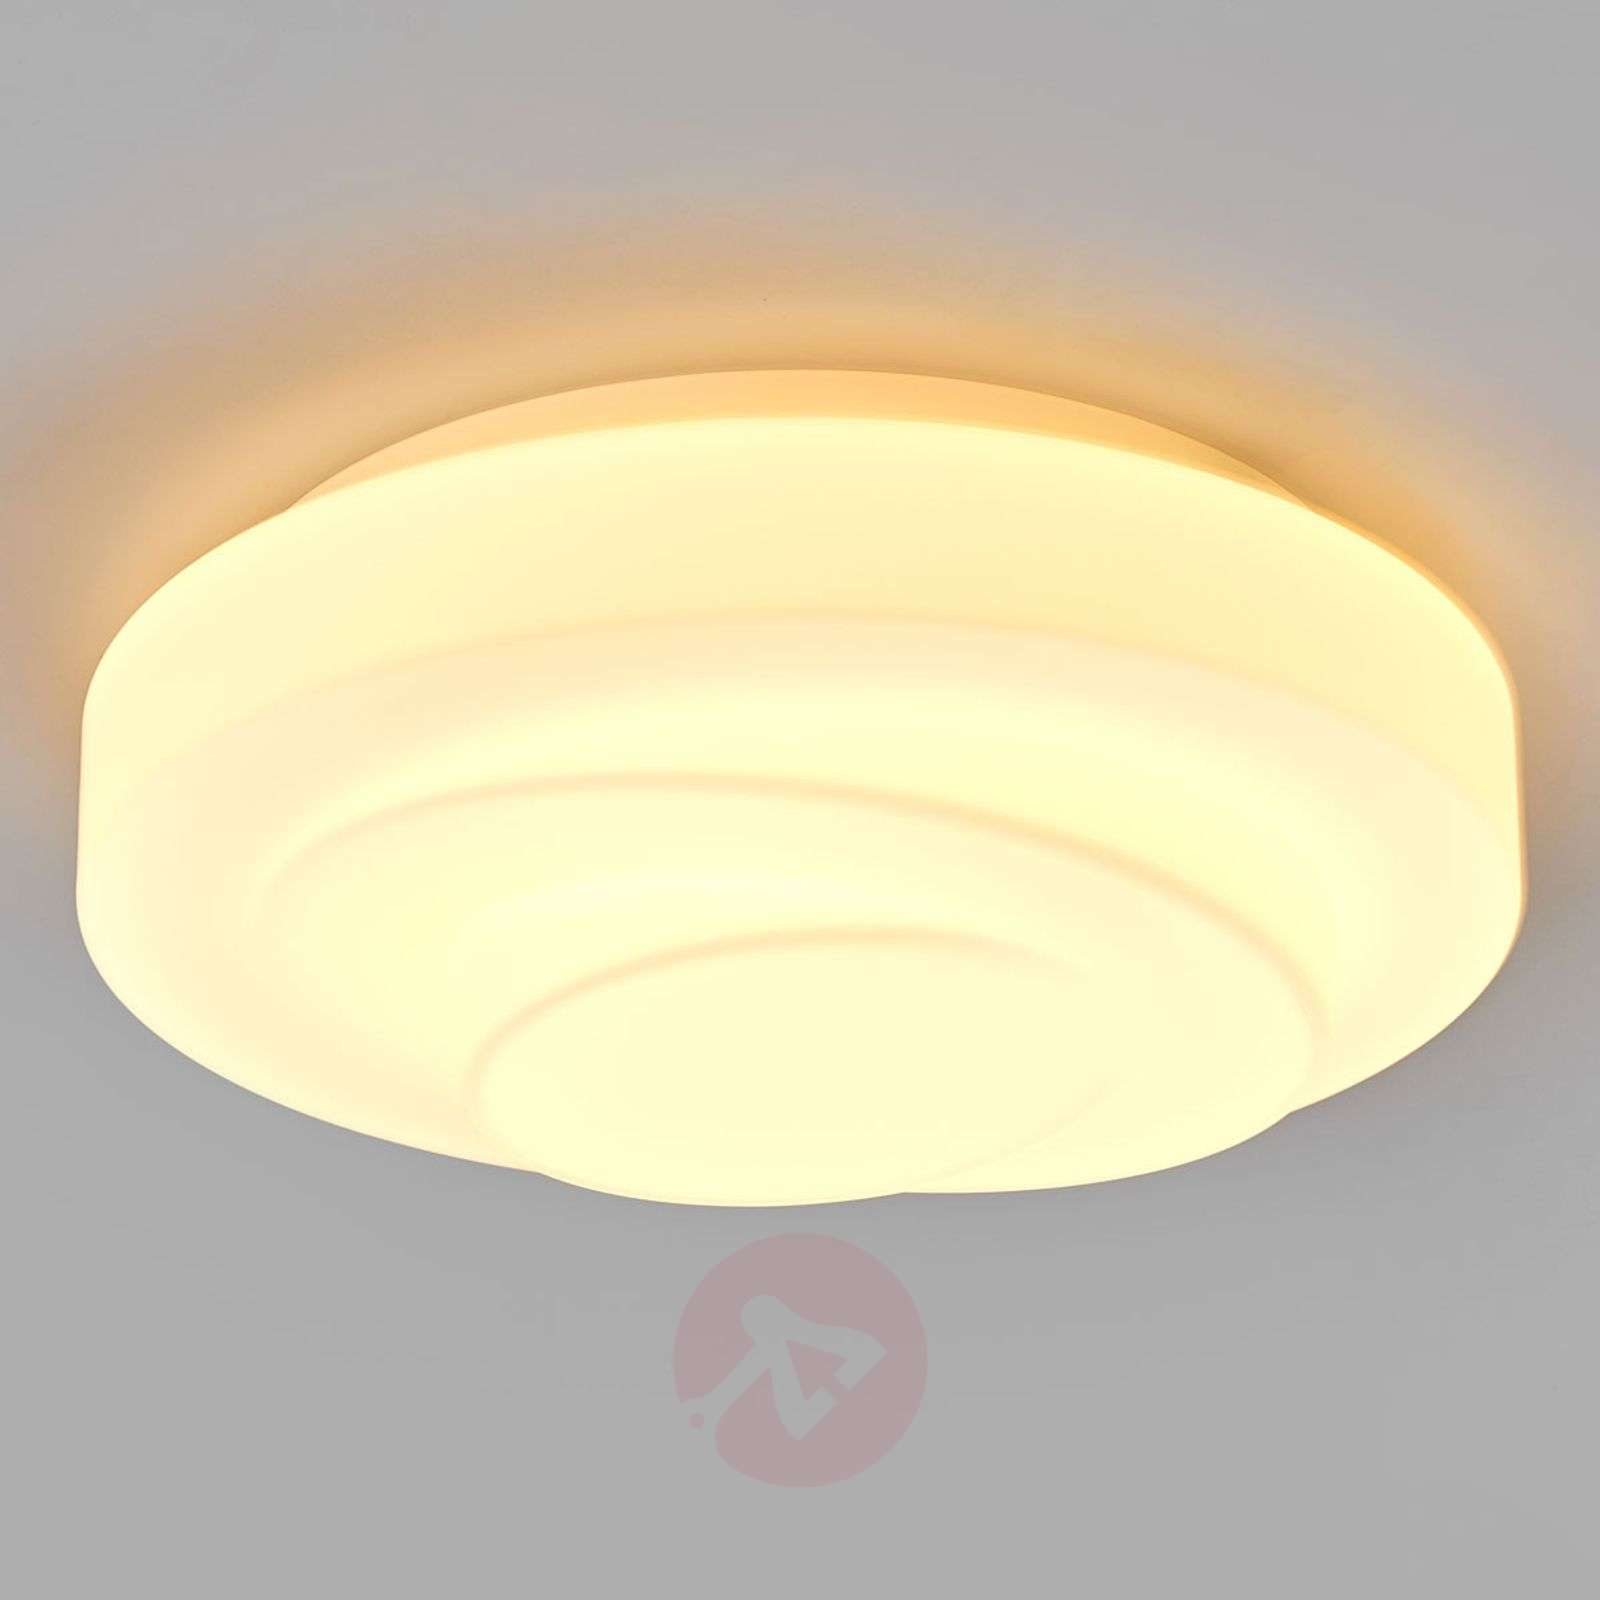 Loop Line Led Ceiling Light Made Of Blown Glass